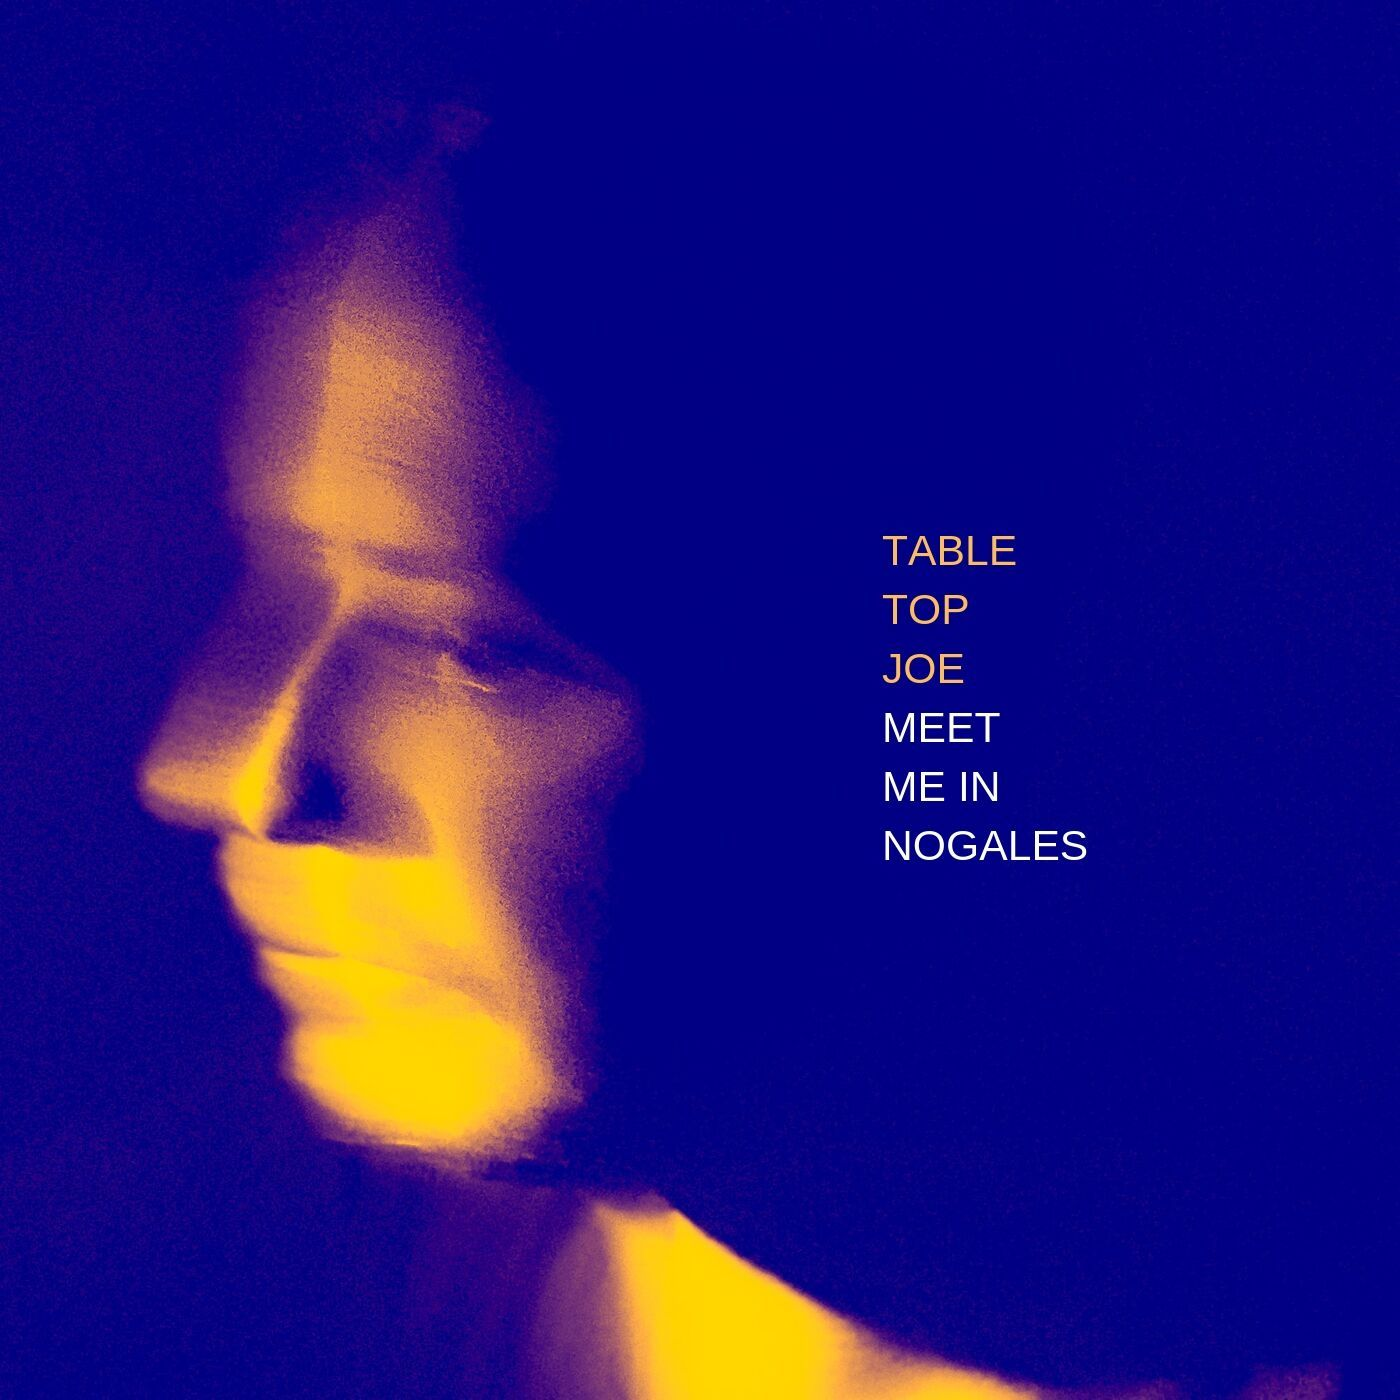 Meet Me in Nogales, une ballade d'amour mais pas que. (Table Top Joe)